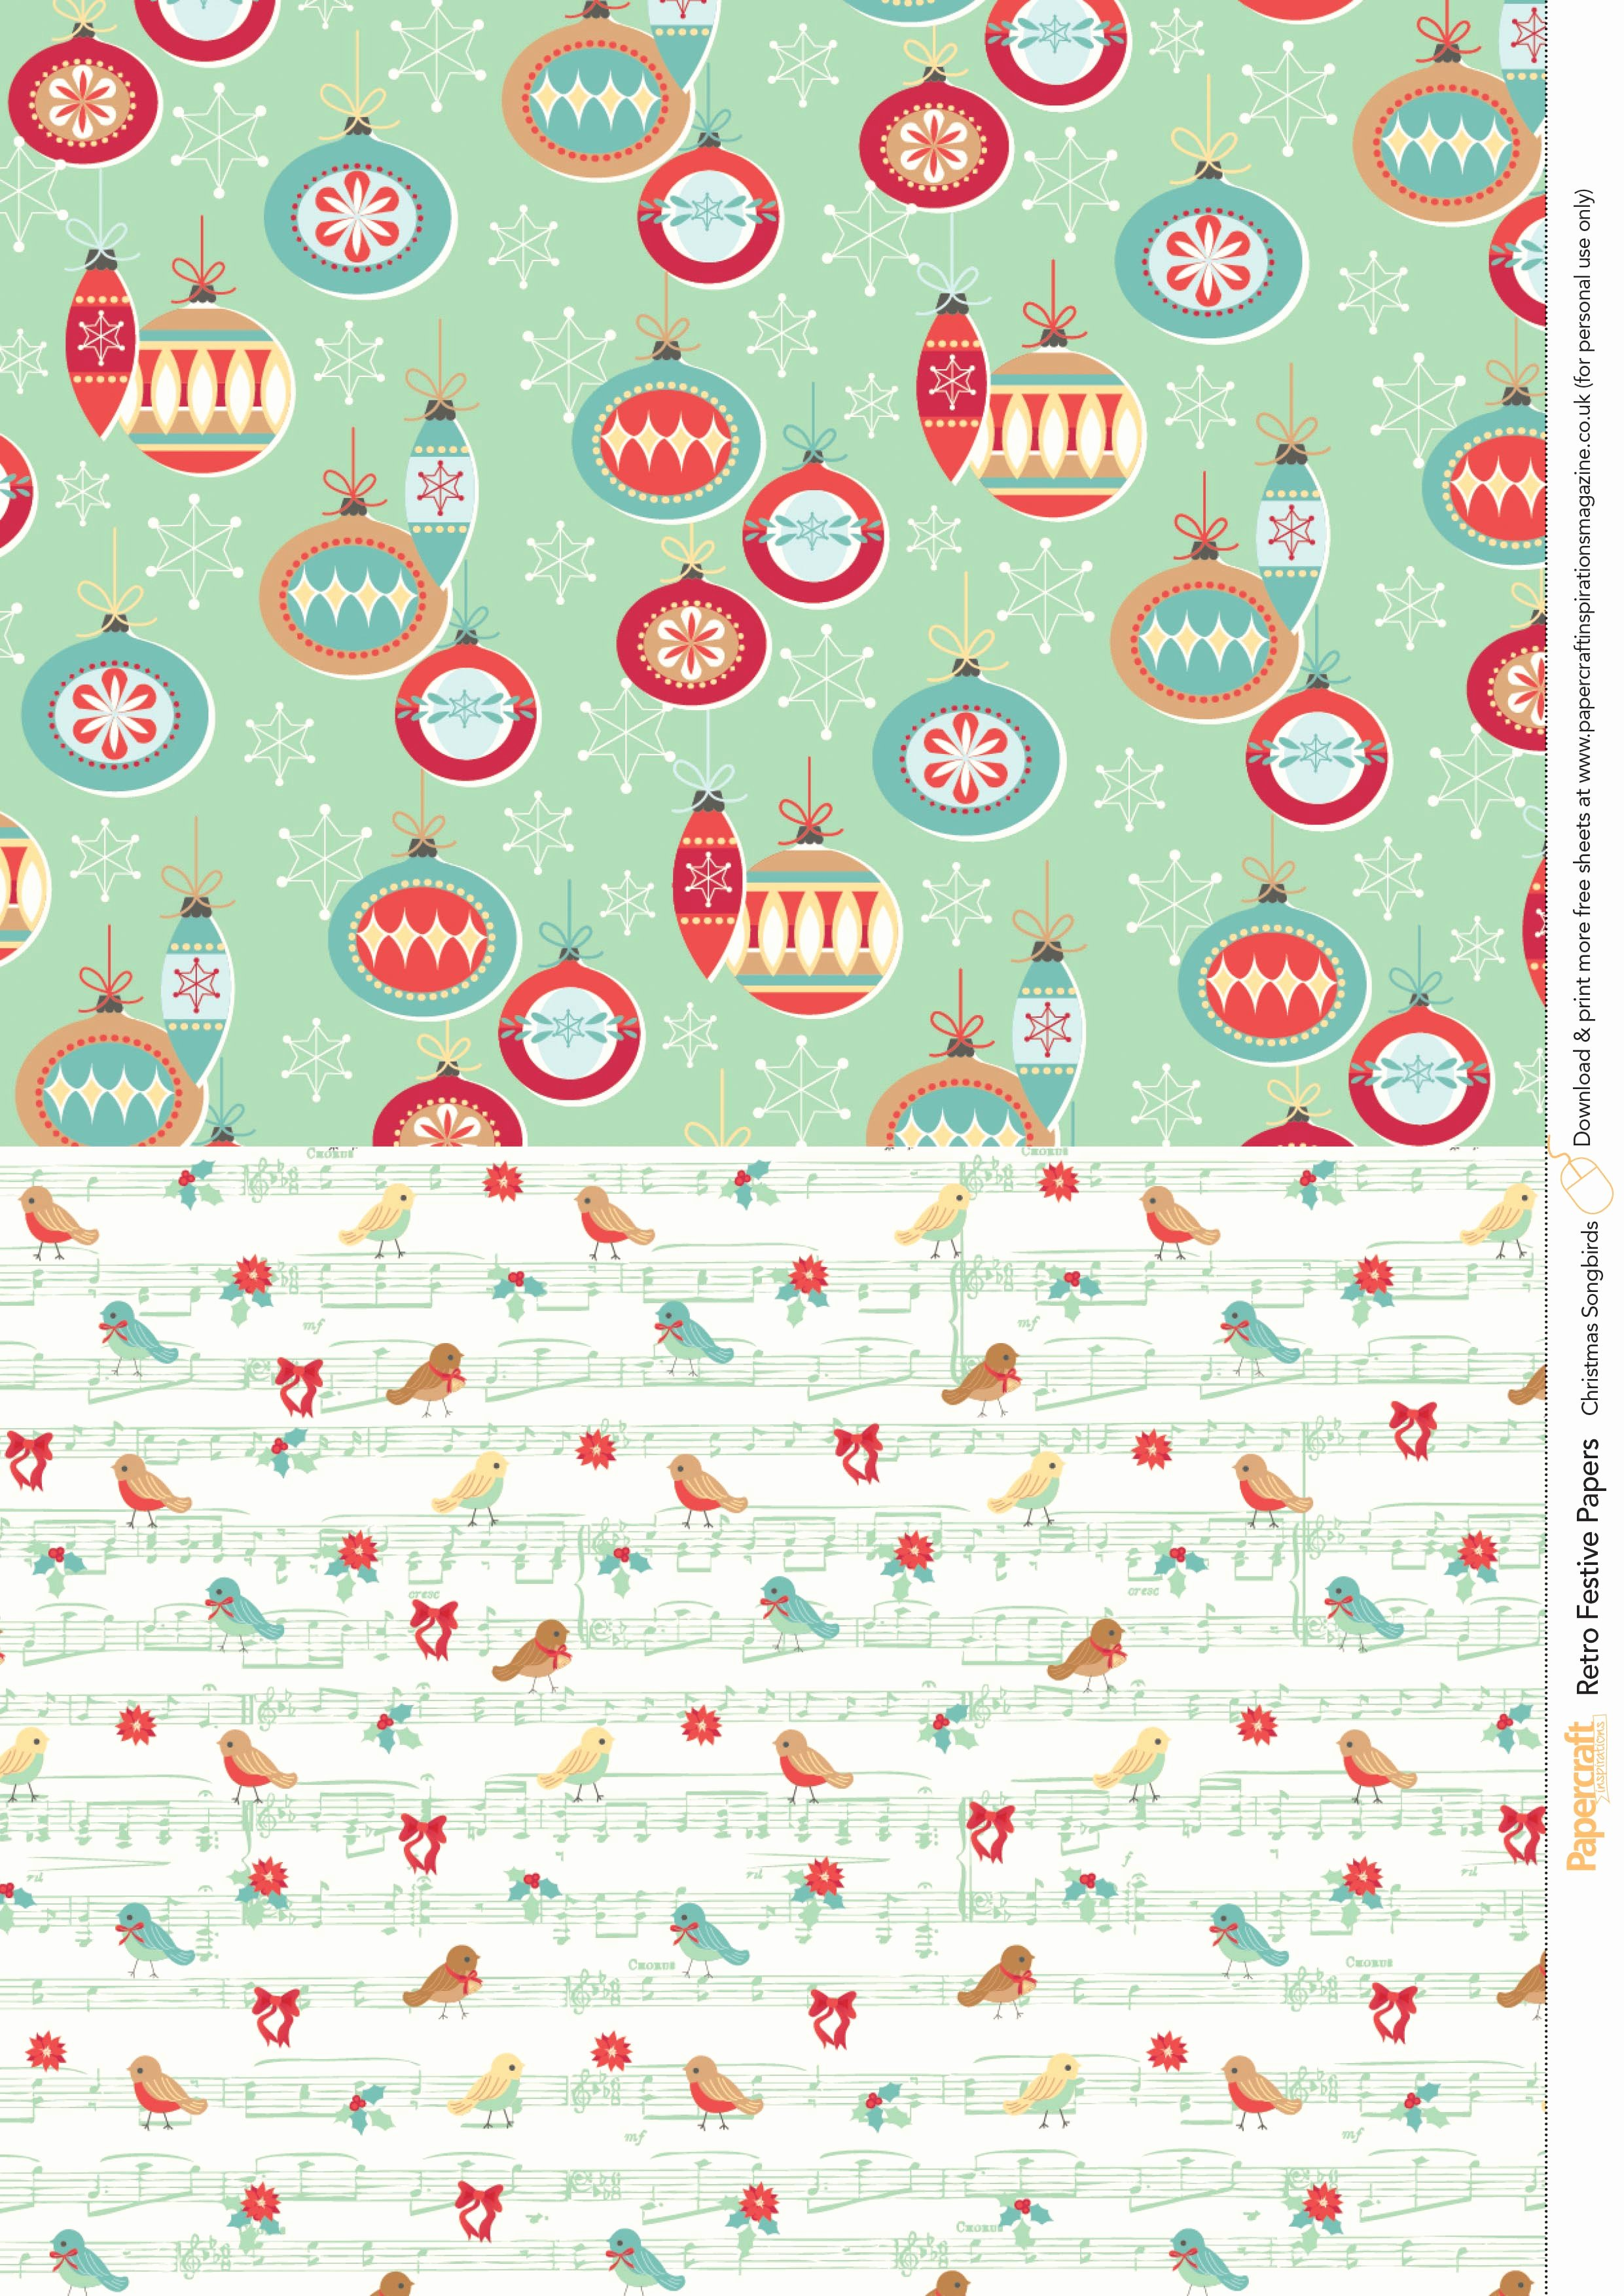 Christmas Paper to Print Best Of Retro Festive Free Printables From Papercraft Inspirations 145